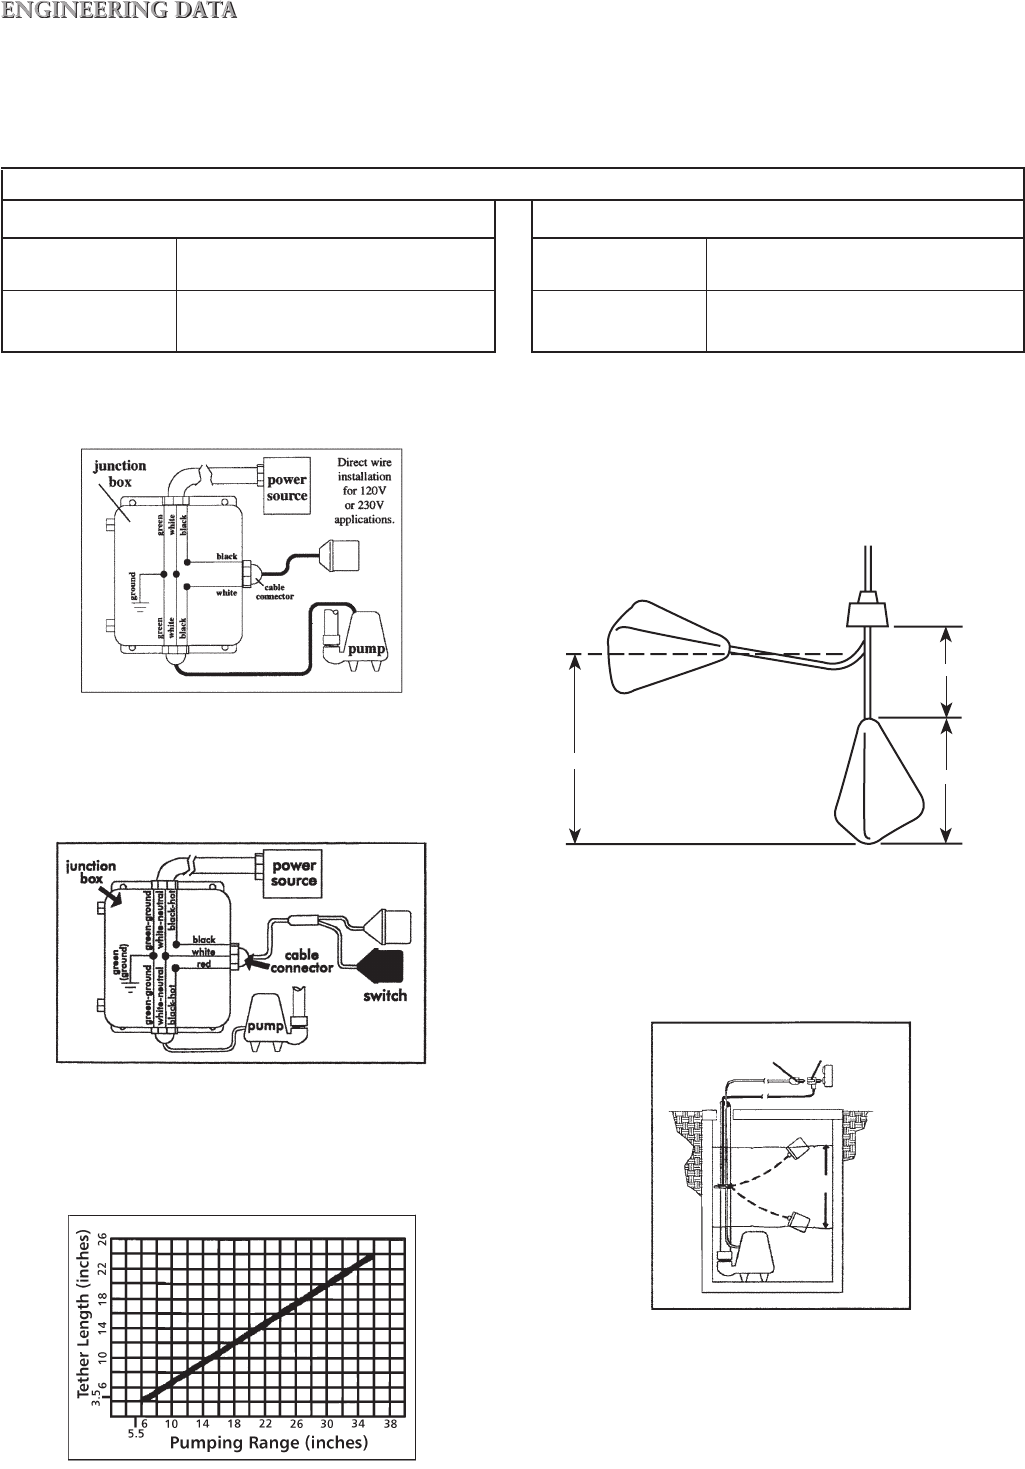 538567 2 Goulds Single Phase Sump Pump Installation Manual Wiring Diagram Float Switch Hecho 8